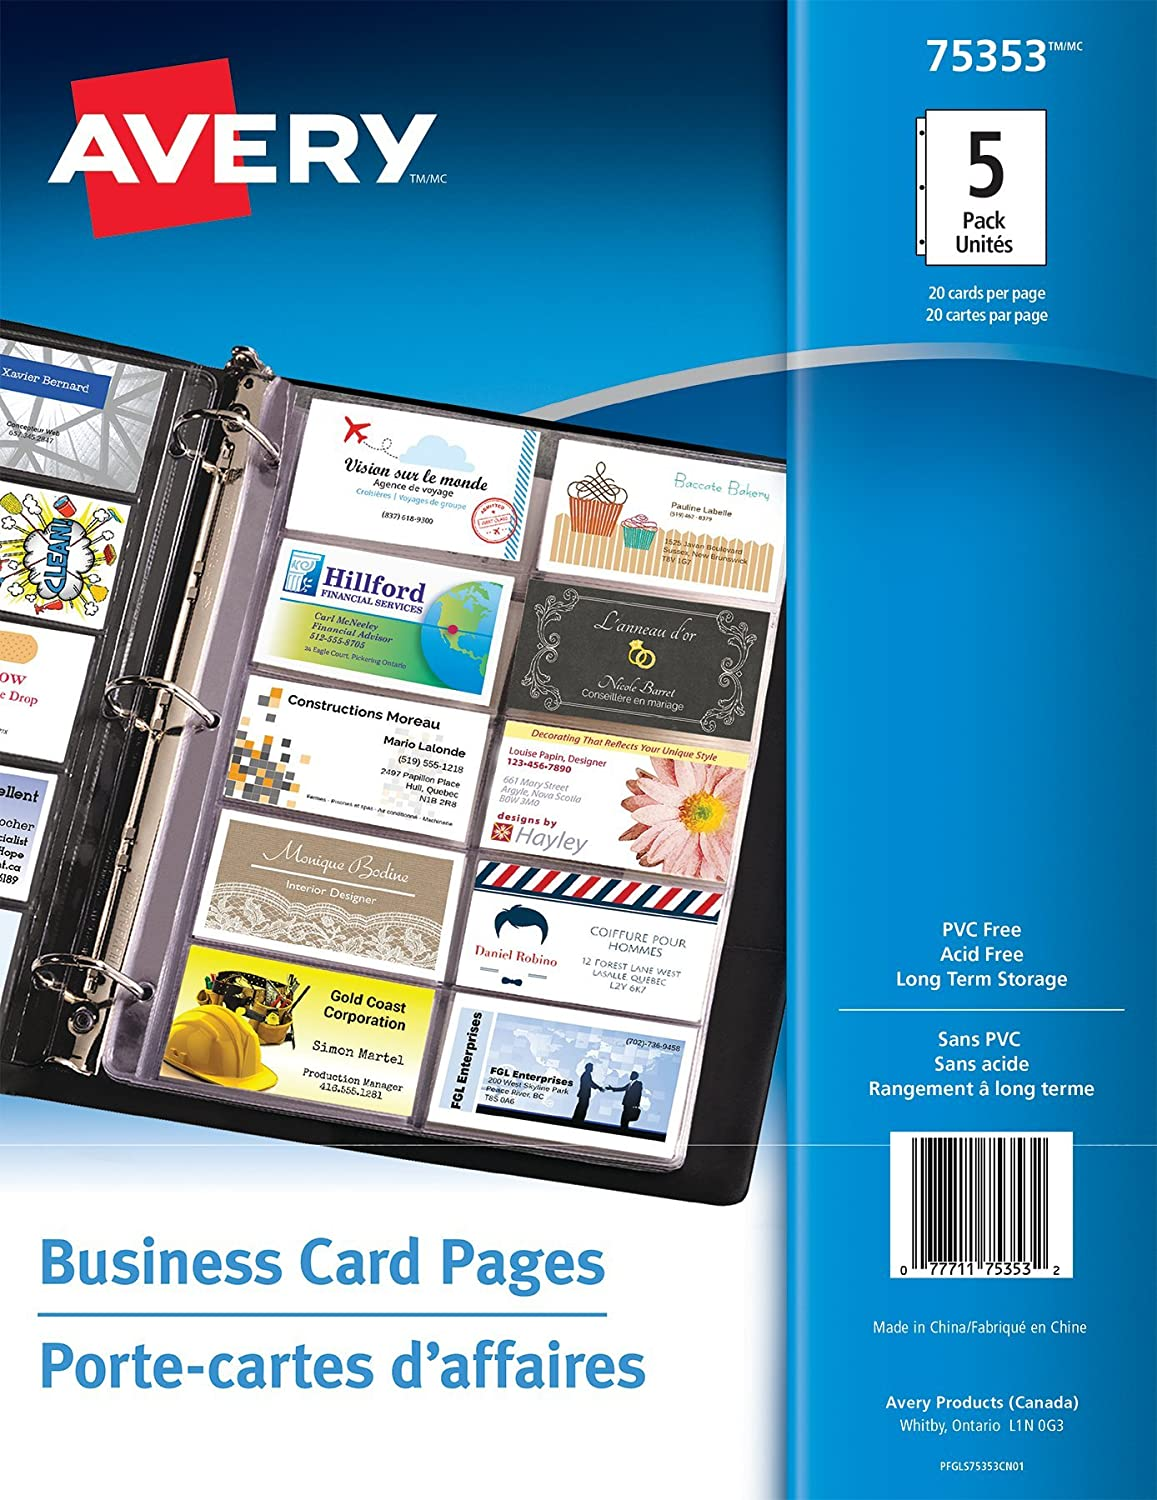 Avery Business Card Pages, Clear, Fits 2.5 x 3 Cards, 5 Sheets (75353) 77711753532